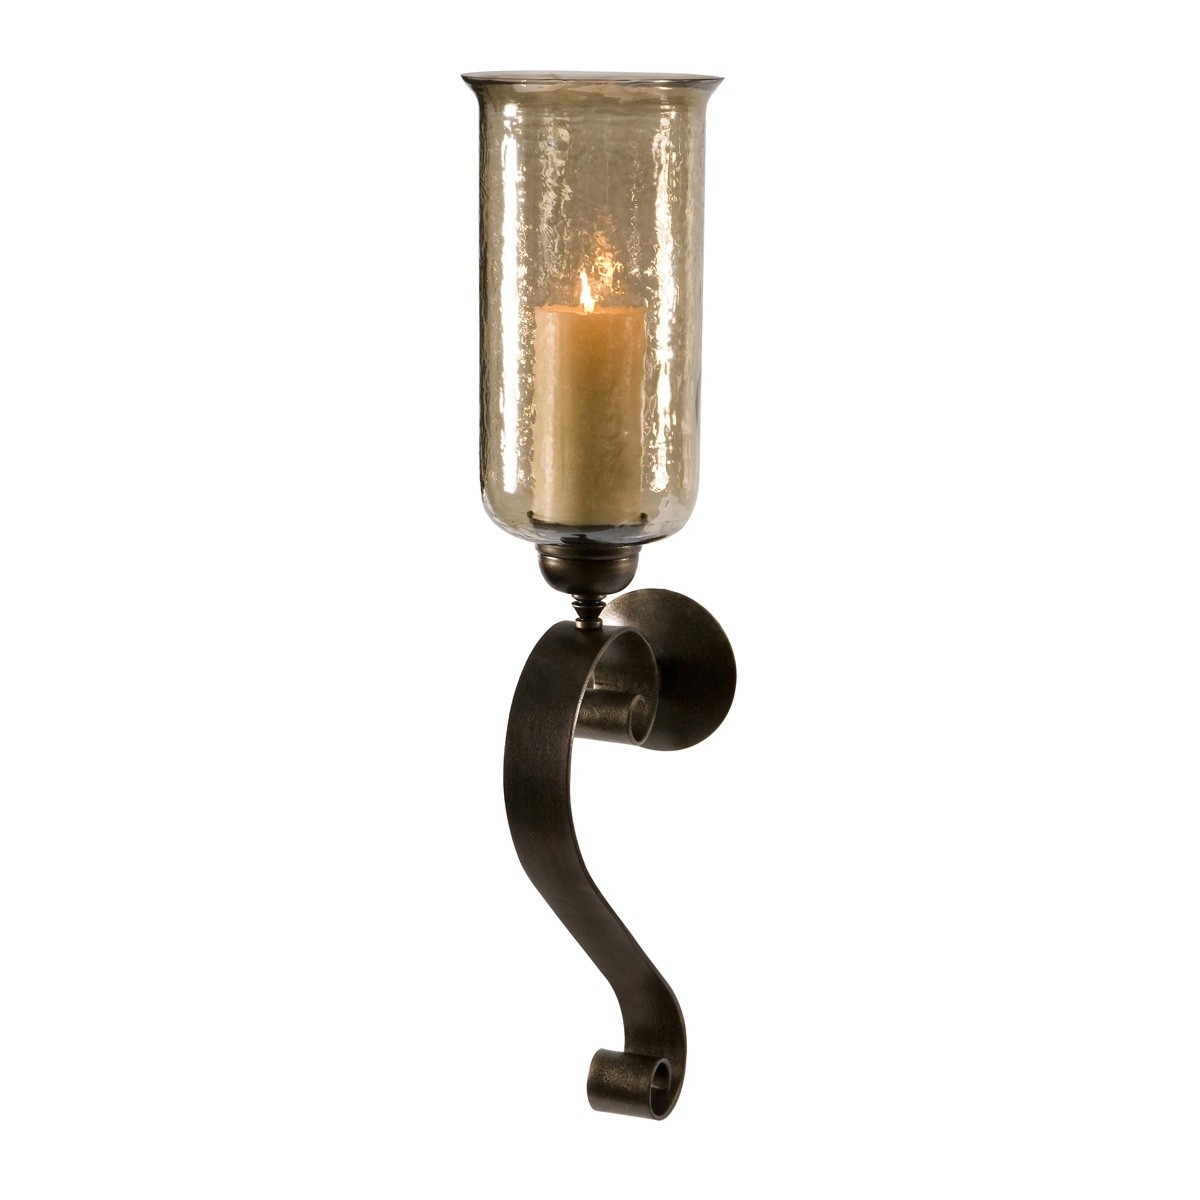 Widely Used Outdoor Mexican Lanterns In Mexican Wrought Iron Chandeliers Electric Wall Sconce Lights Porch (View 20 of 20)